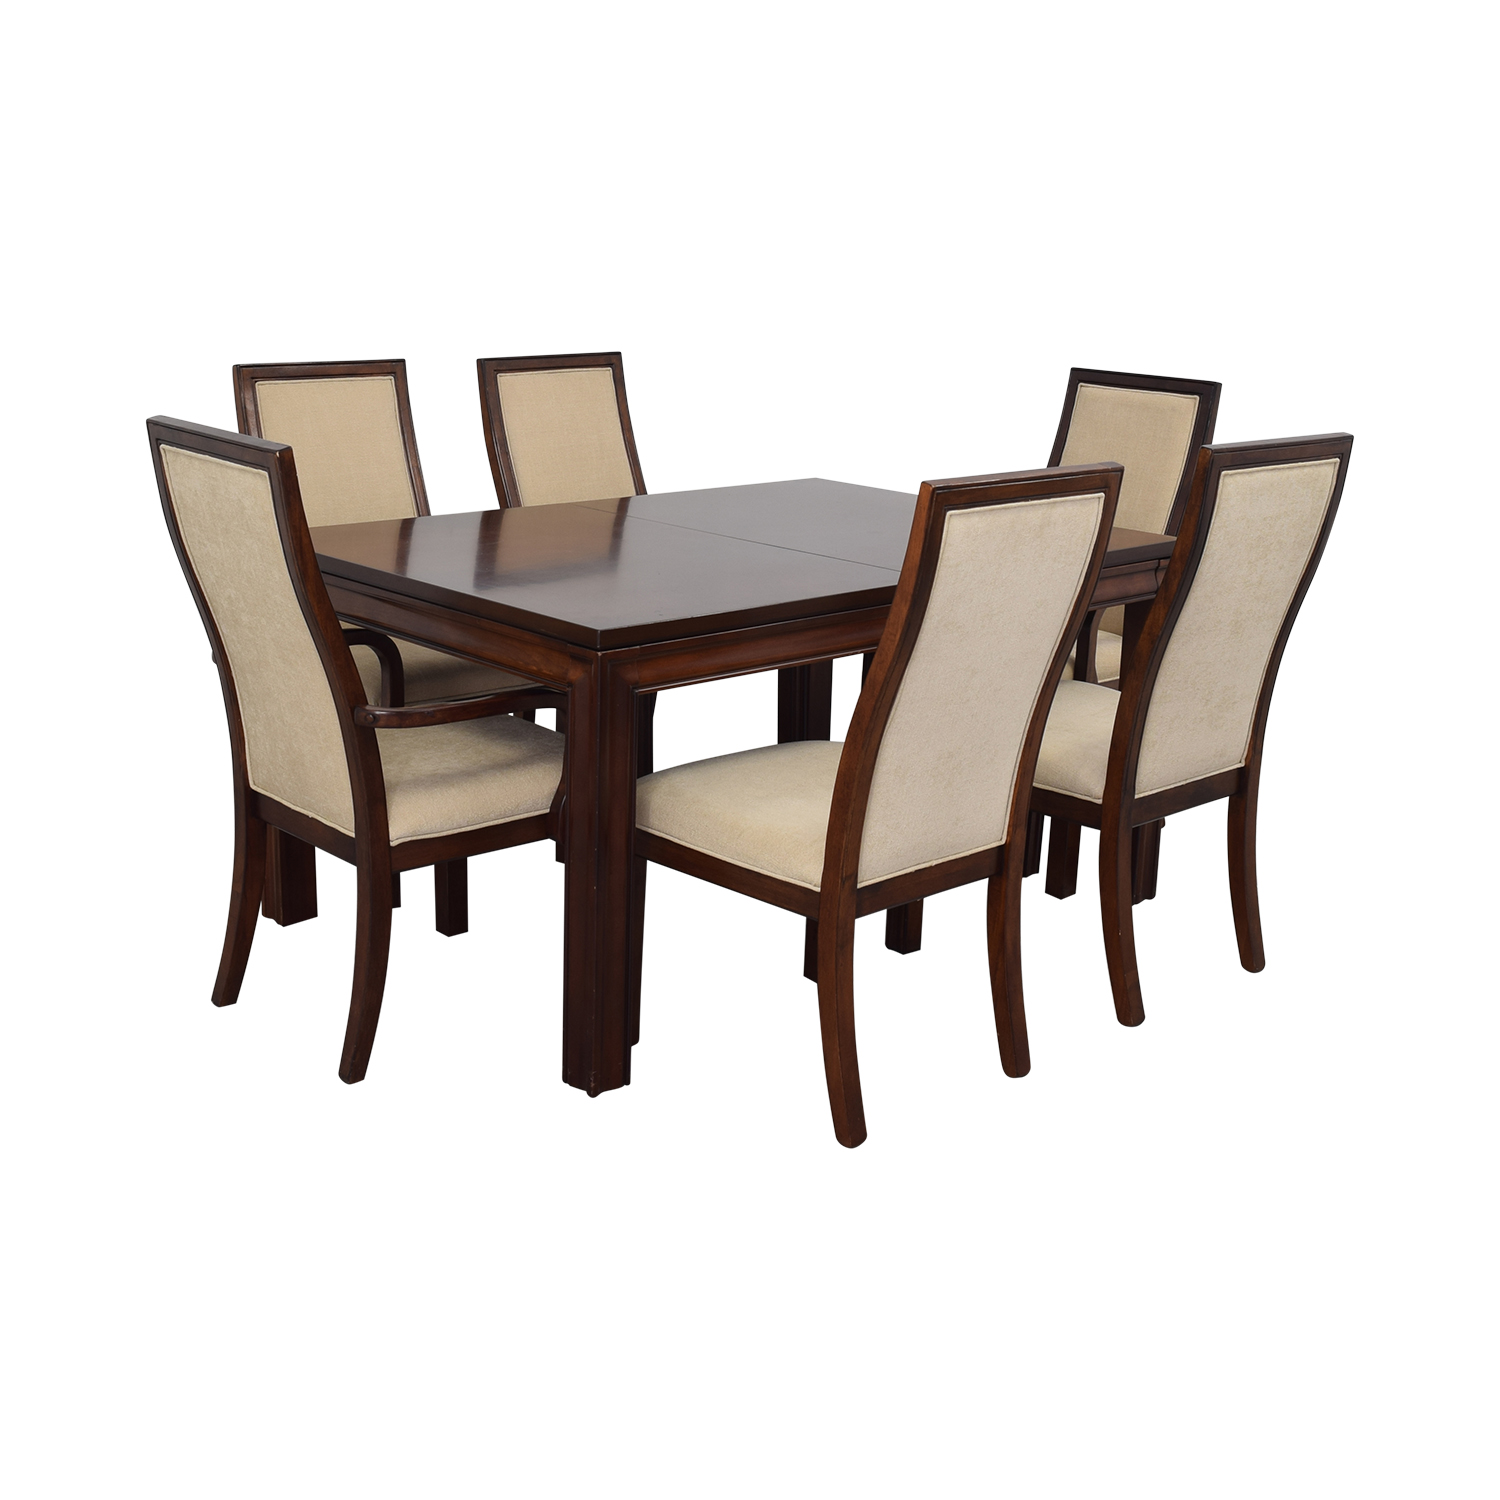 Macy's Macy's Extendable Wood Dining Set Dining Sets